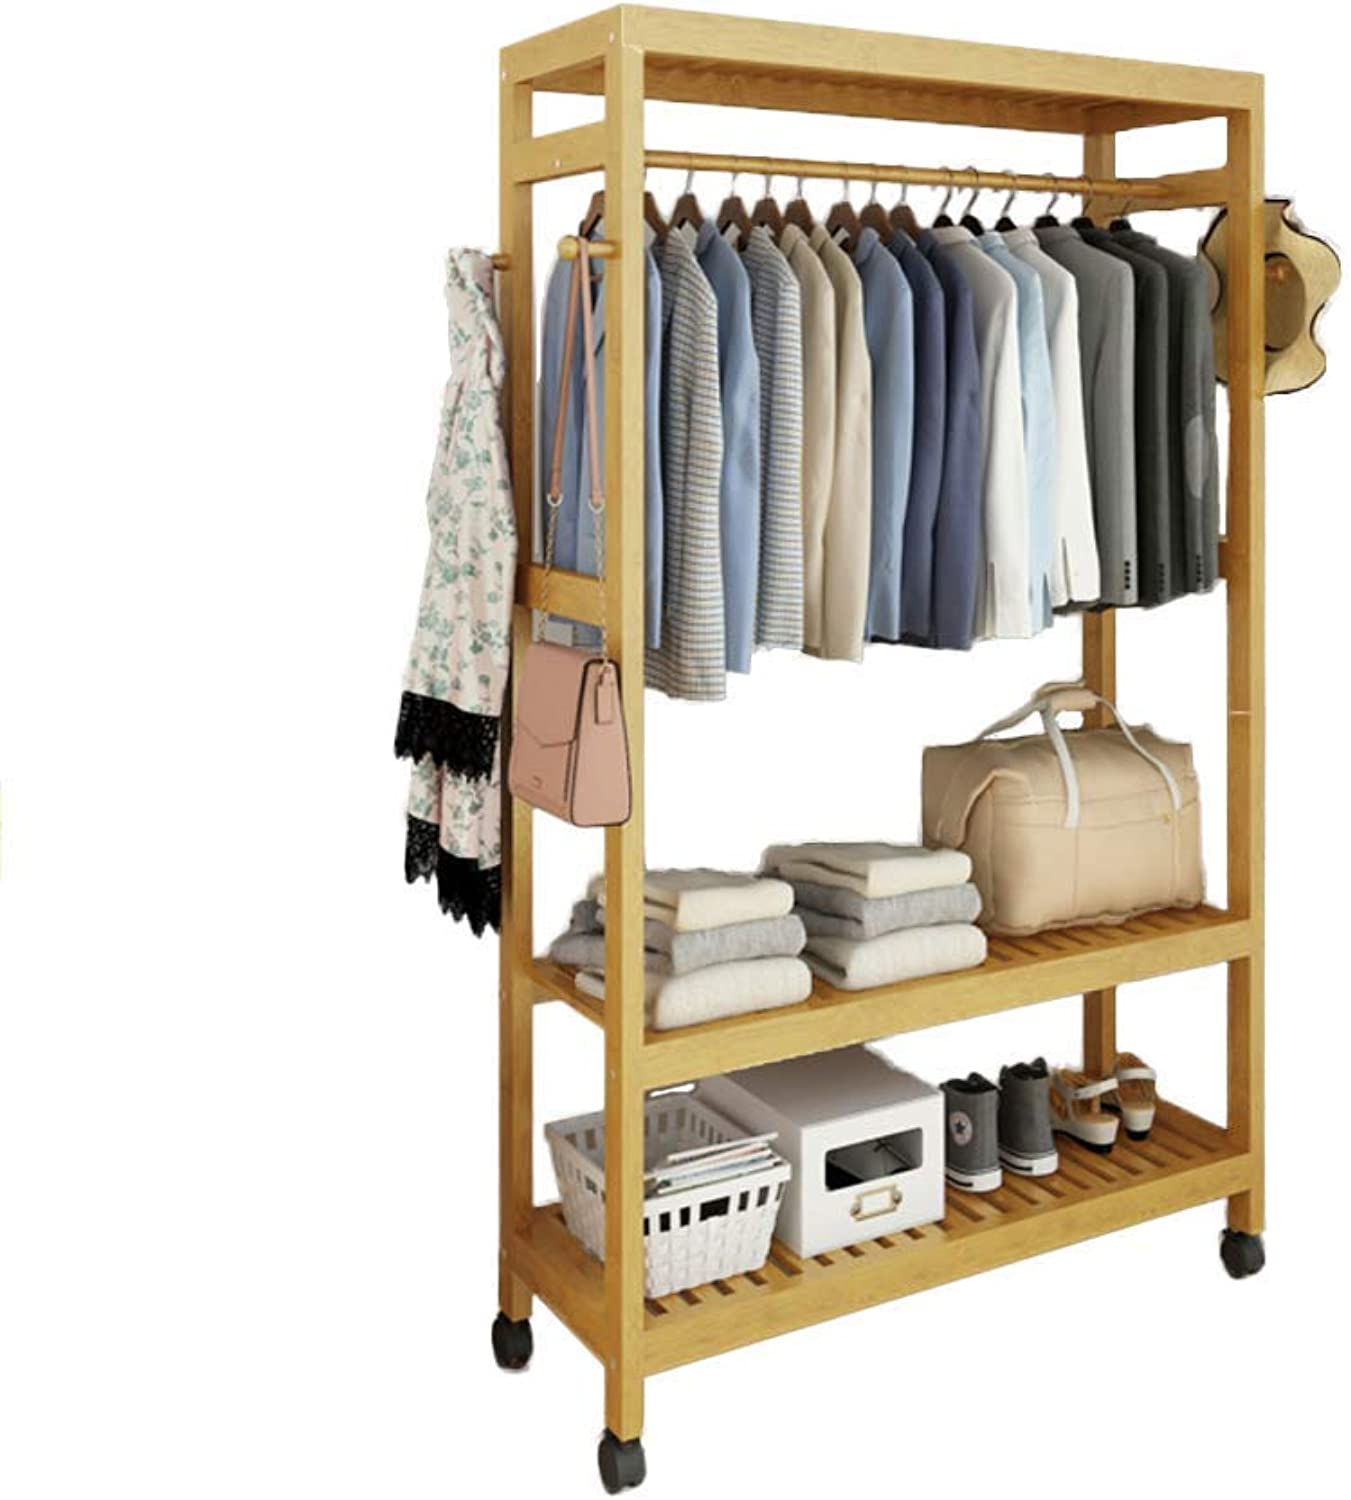 DYR Bamboo Entryway Coat Rack with Shelf, Premium Coat Rack shoes Rack, with Roller Heavy Duty Hall Home-F 69x30x165cm (27x12x65inch)